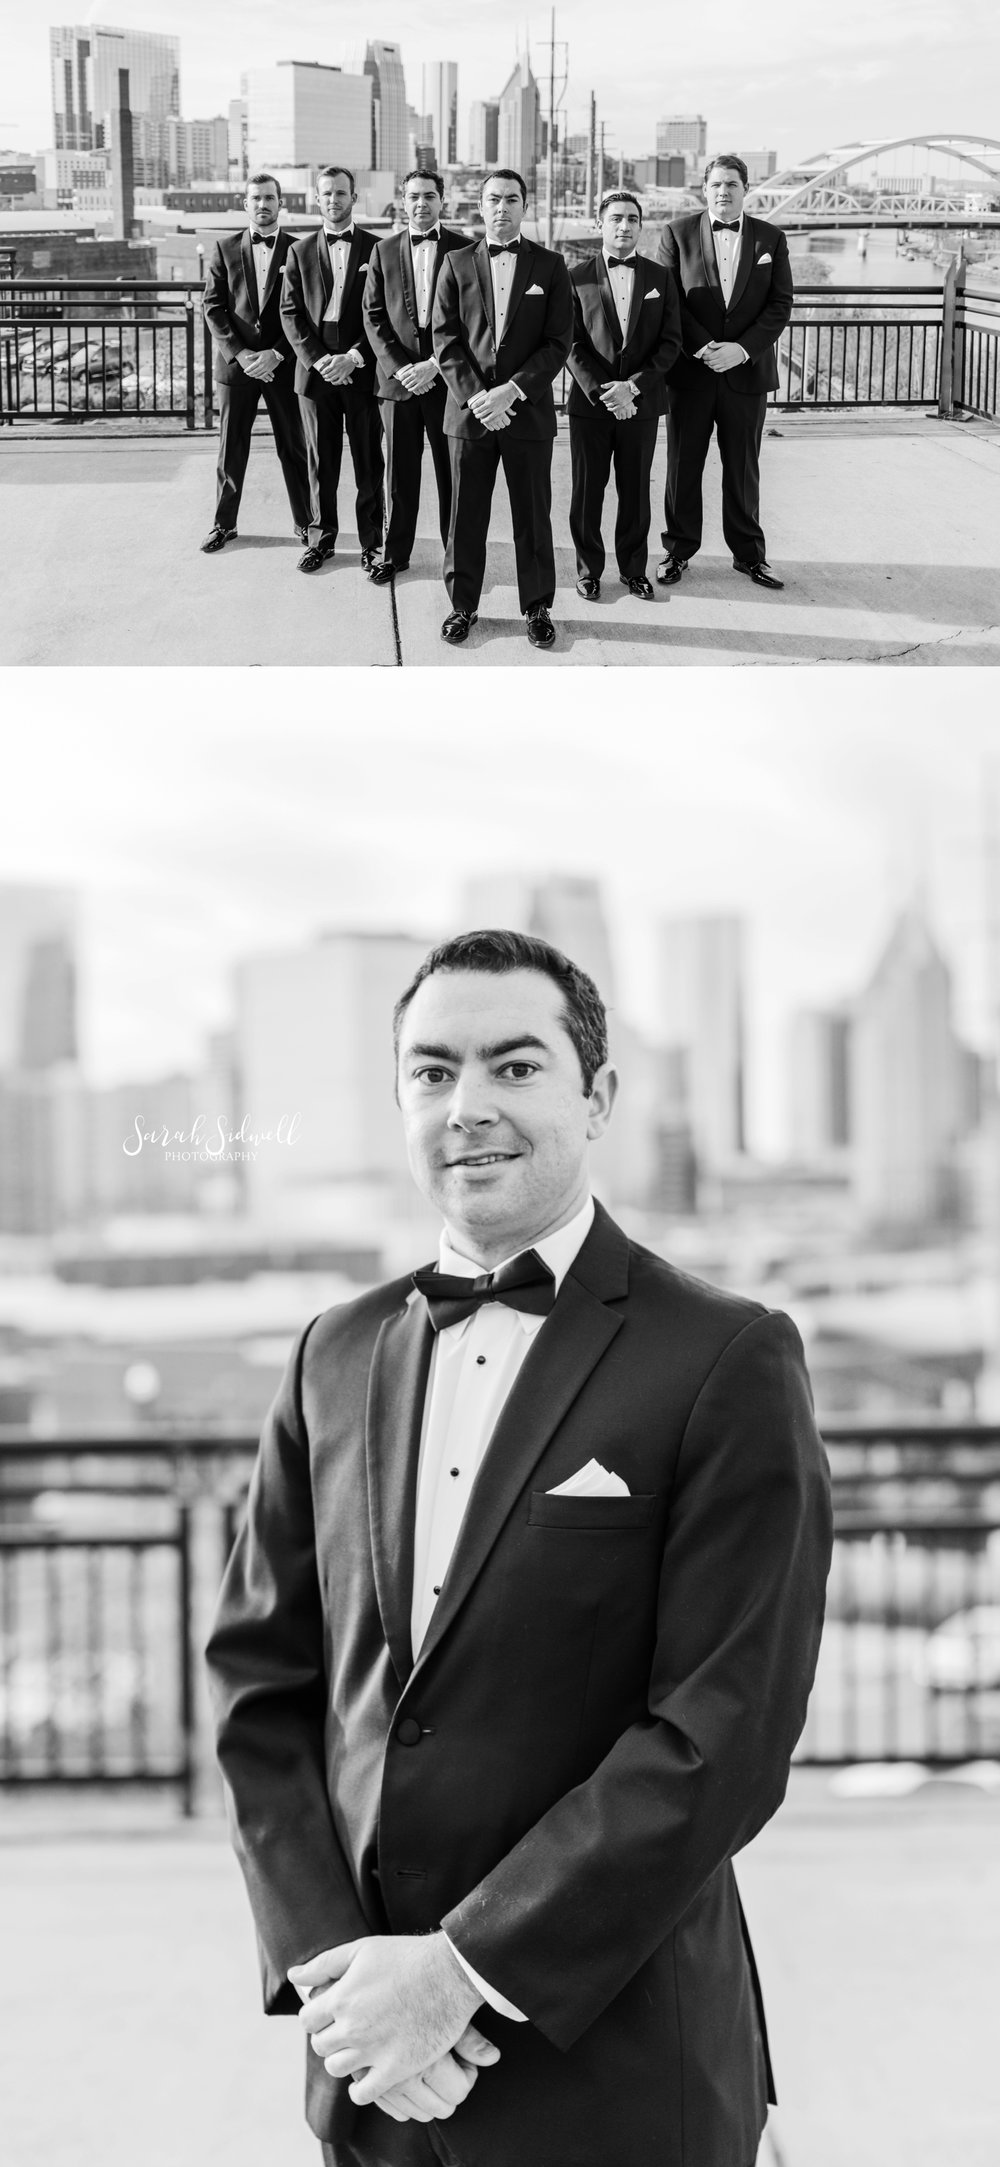 A groom stands ready for his wedding | Sarah Sidwell Photography | The Bell Tower